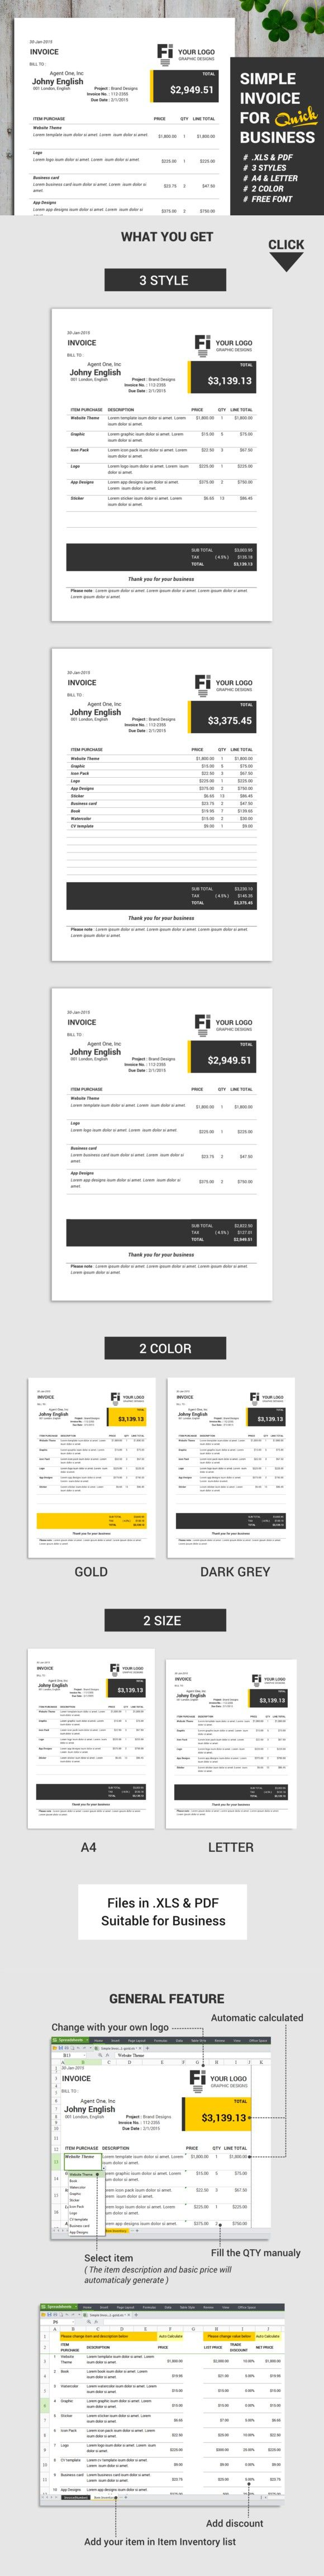 Simple Invoice Automatic Calculate. Stationery Templates